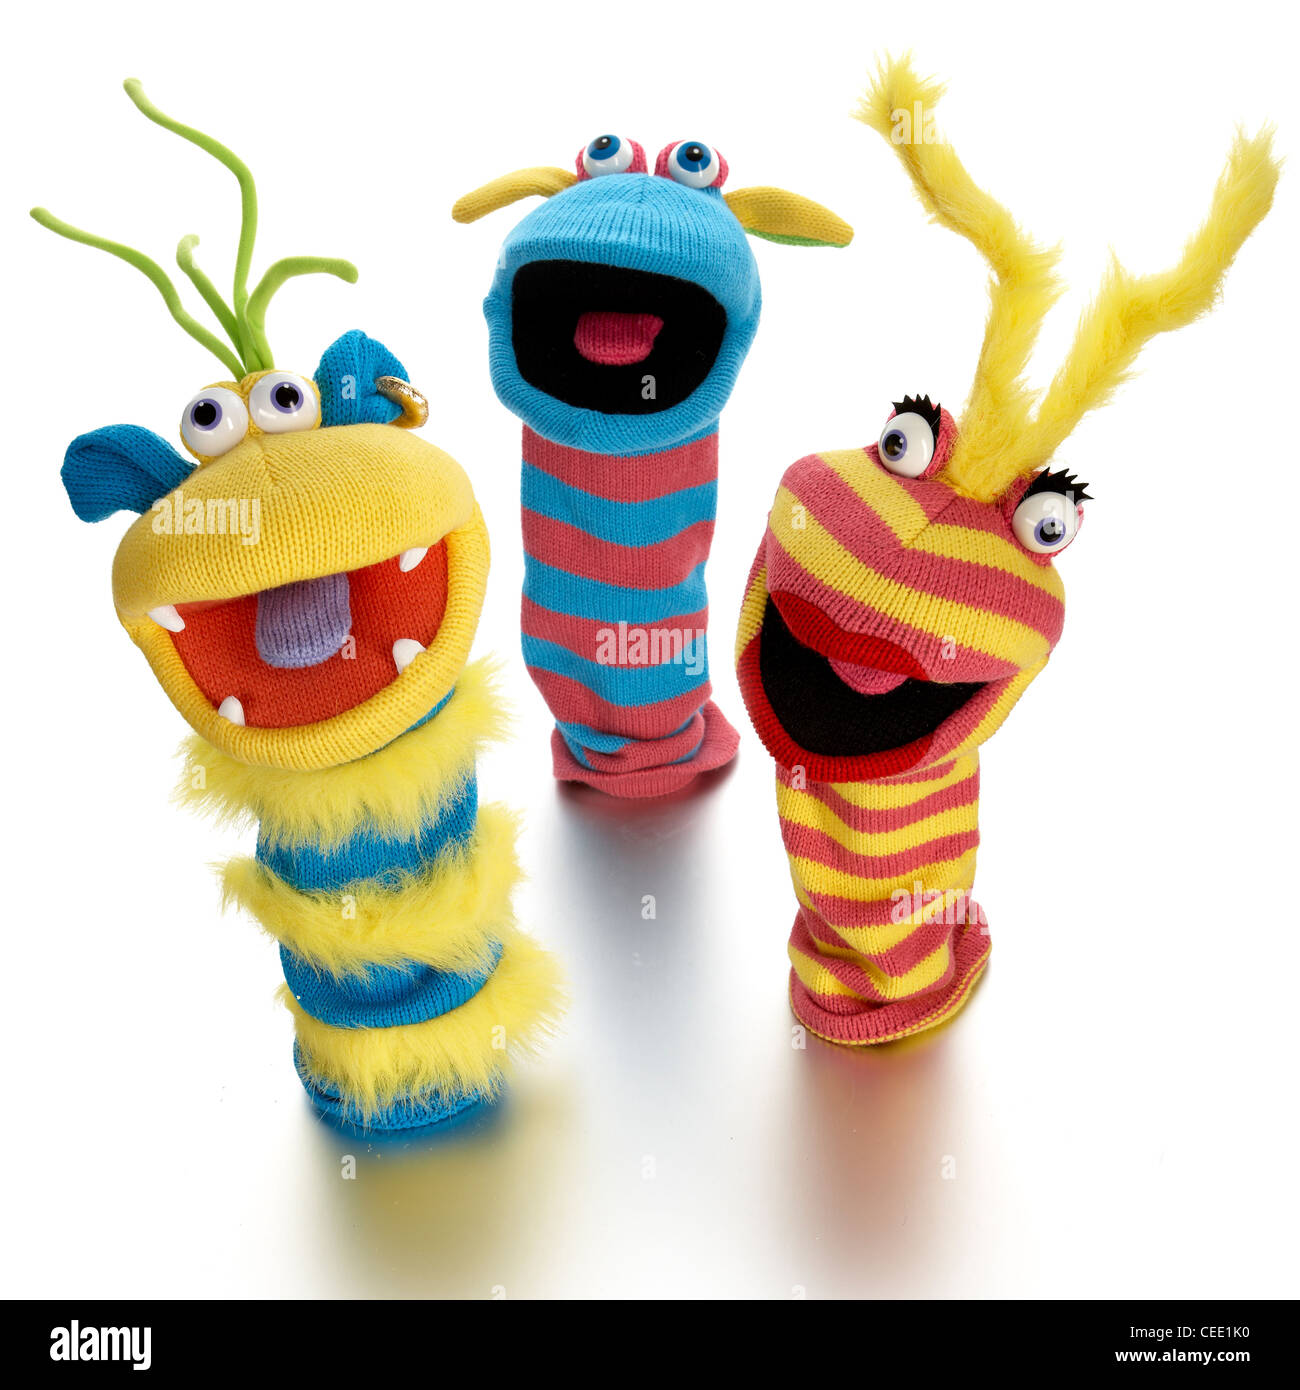 3 colorful fun hand puppets - Stock Image